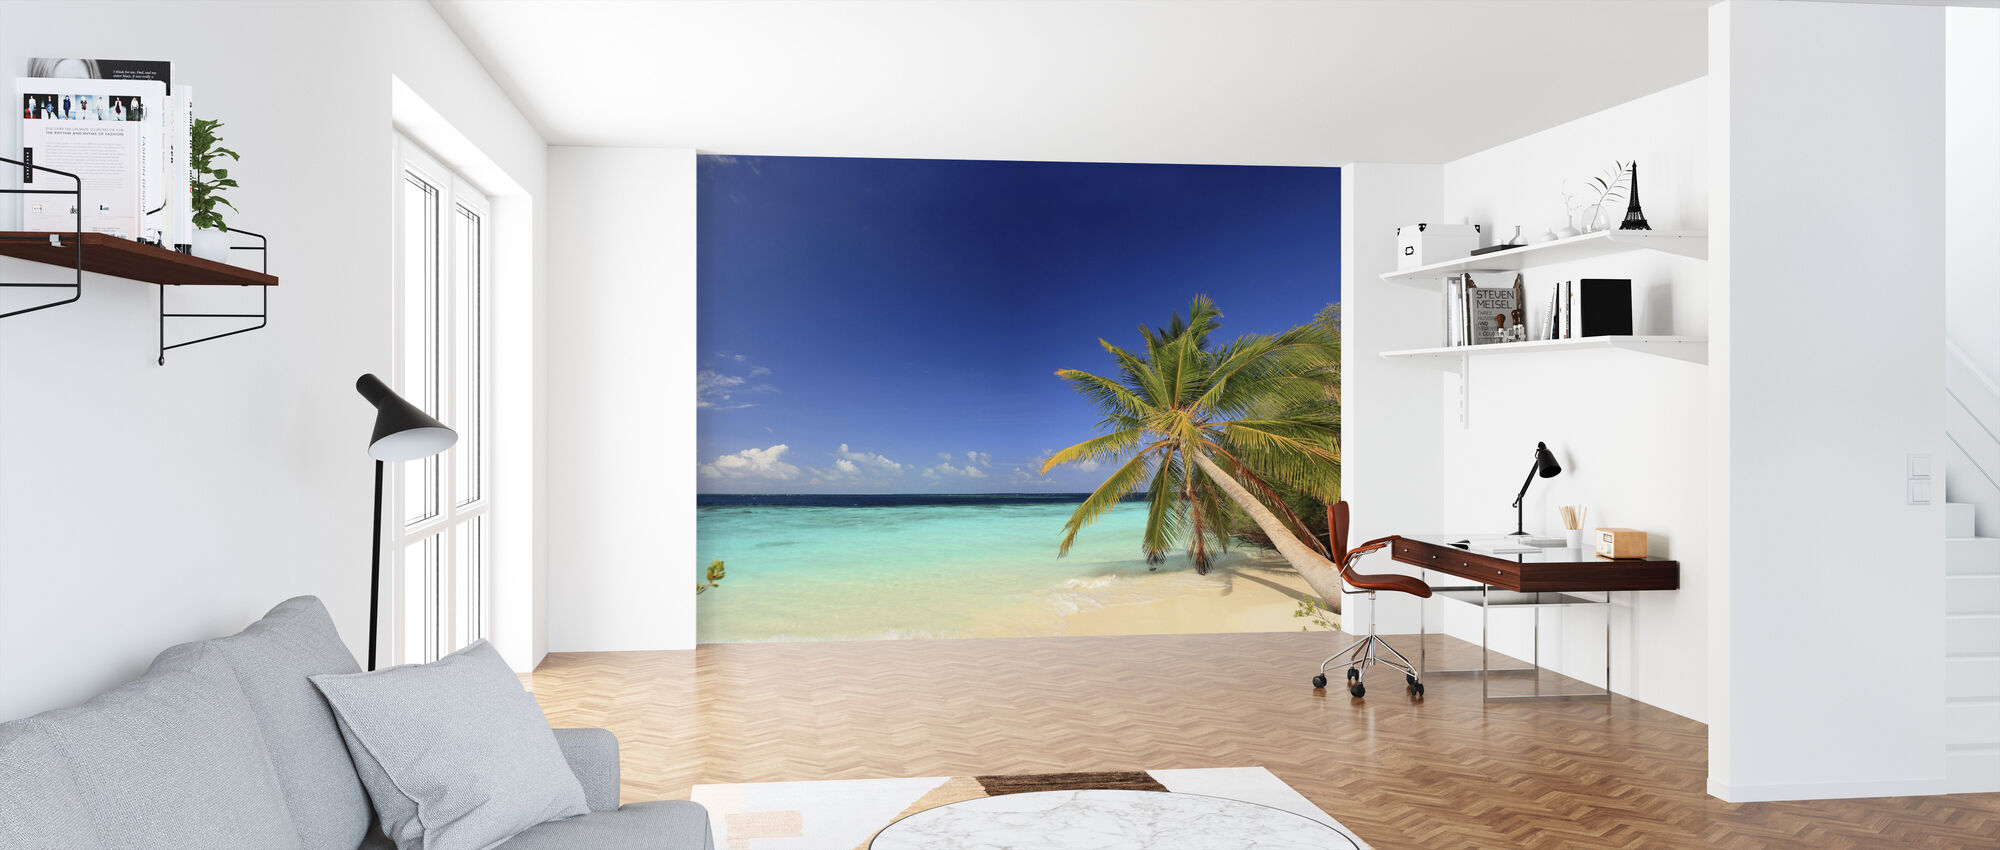 Beach Harmony - Wallpaper - Office